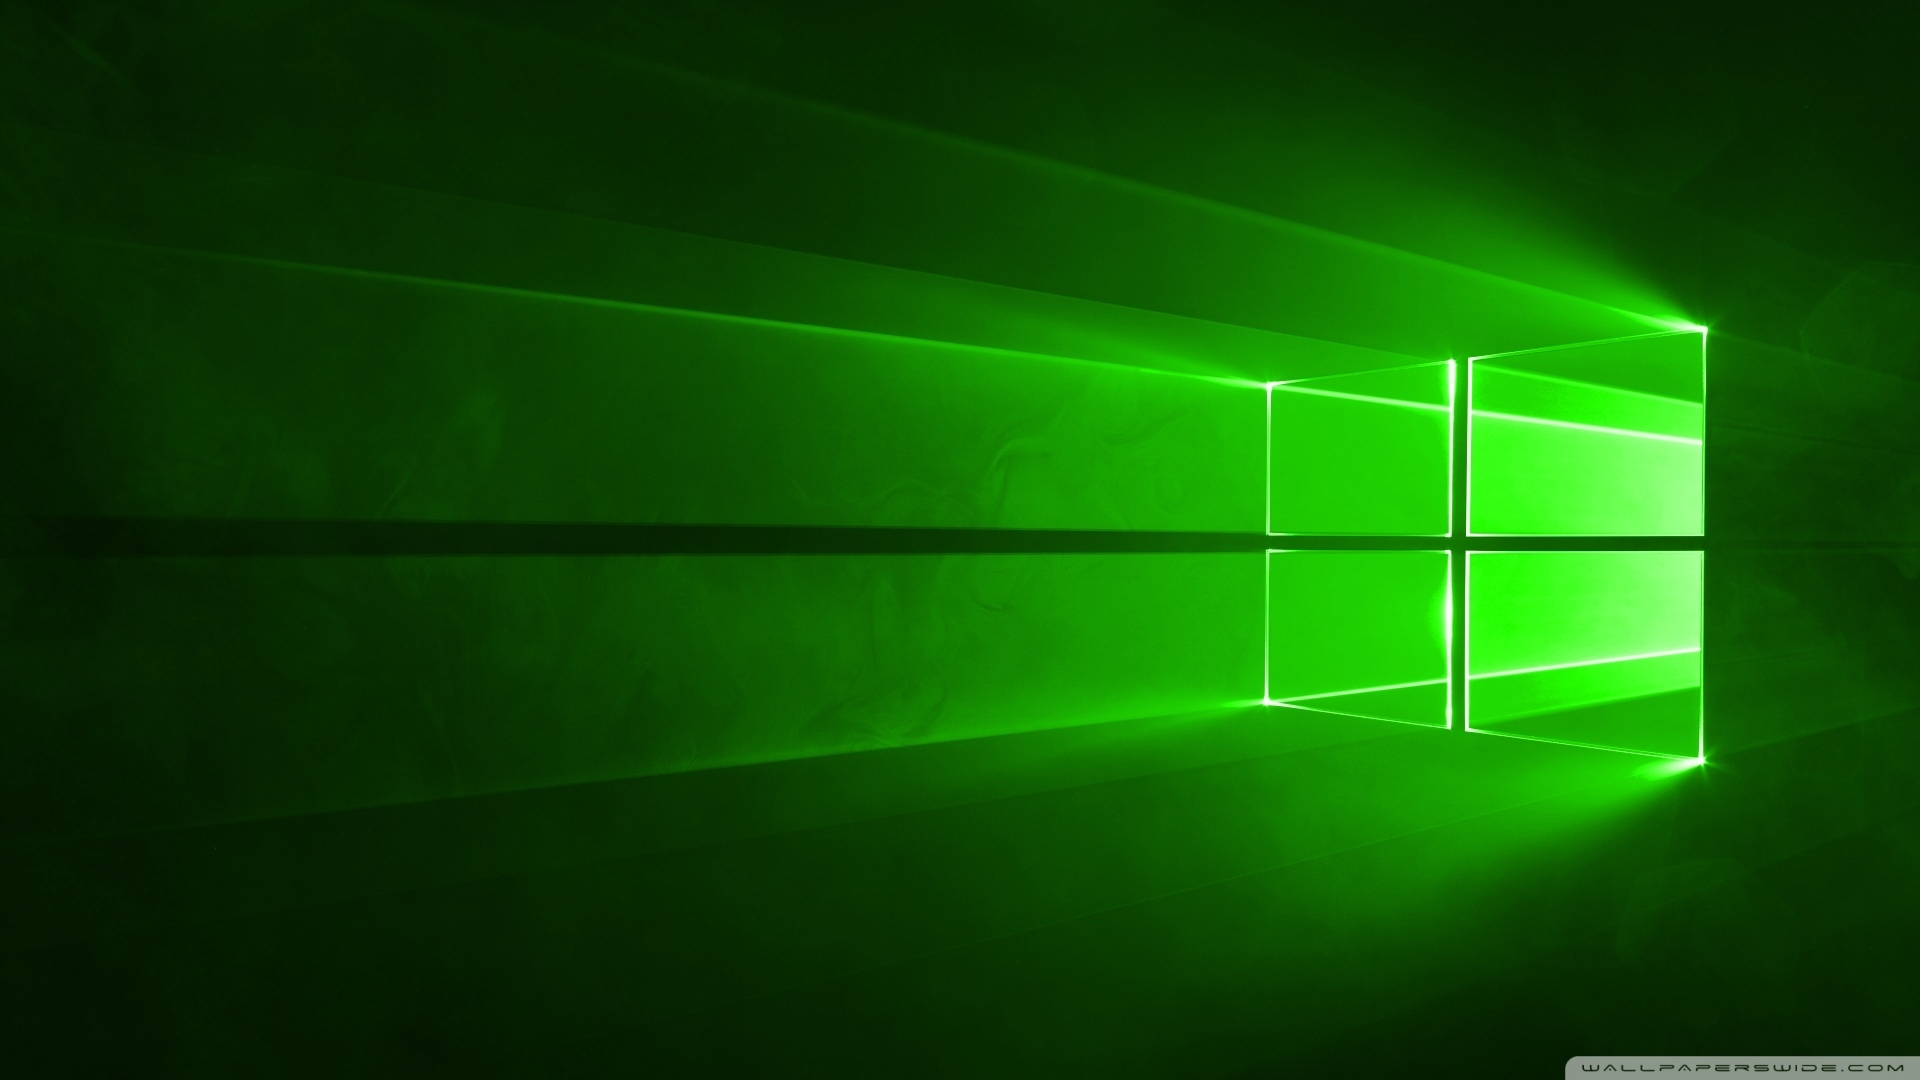 windows 10 green ❤ 4k hd desktop wallpaper for • wide & ultra